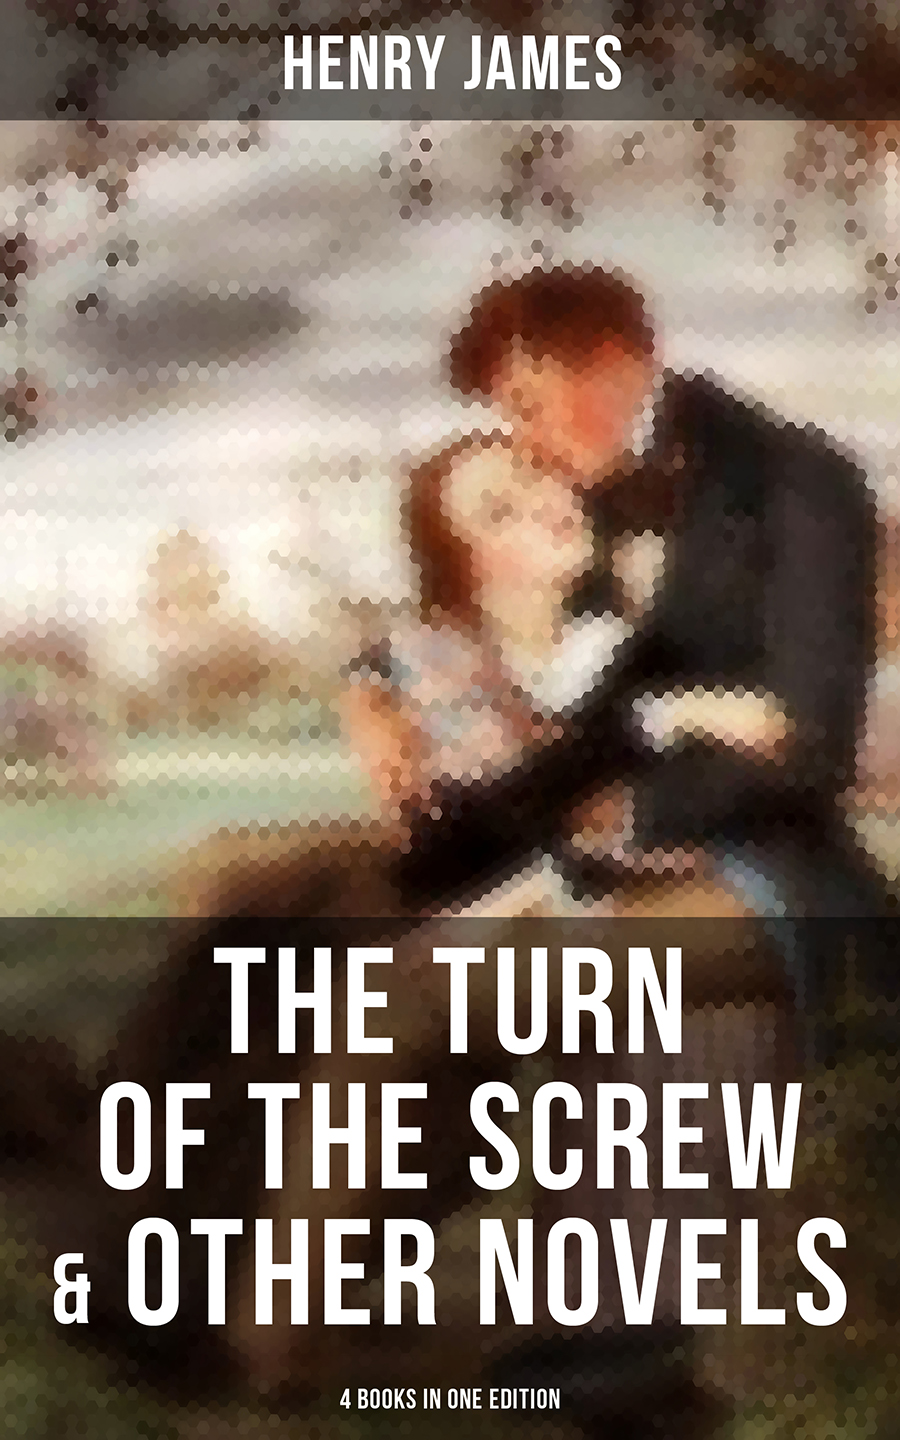 Henry Foss James The Turn of the Screw & Other Novels - 4 Books in One Edition henry james the other house isbn 978 5 521 07077 0